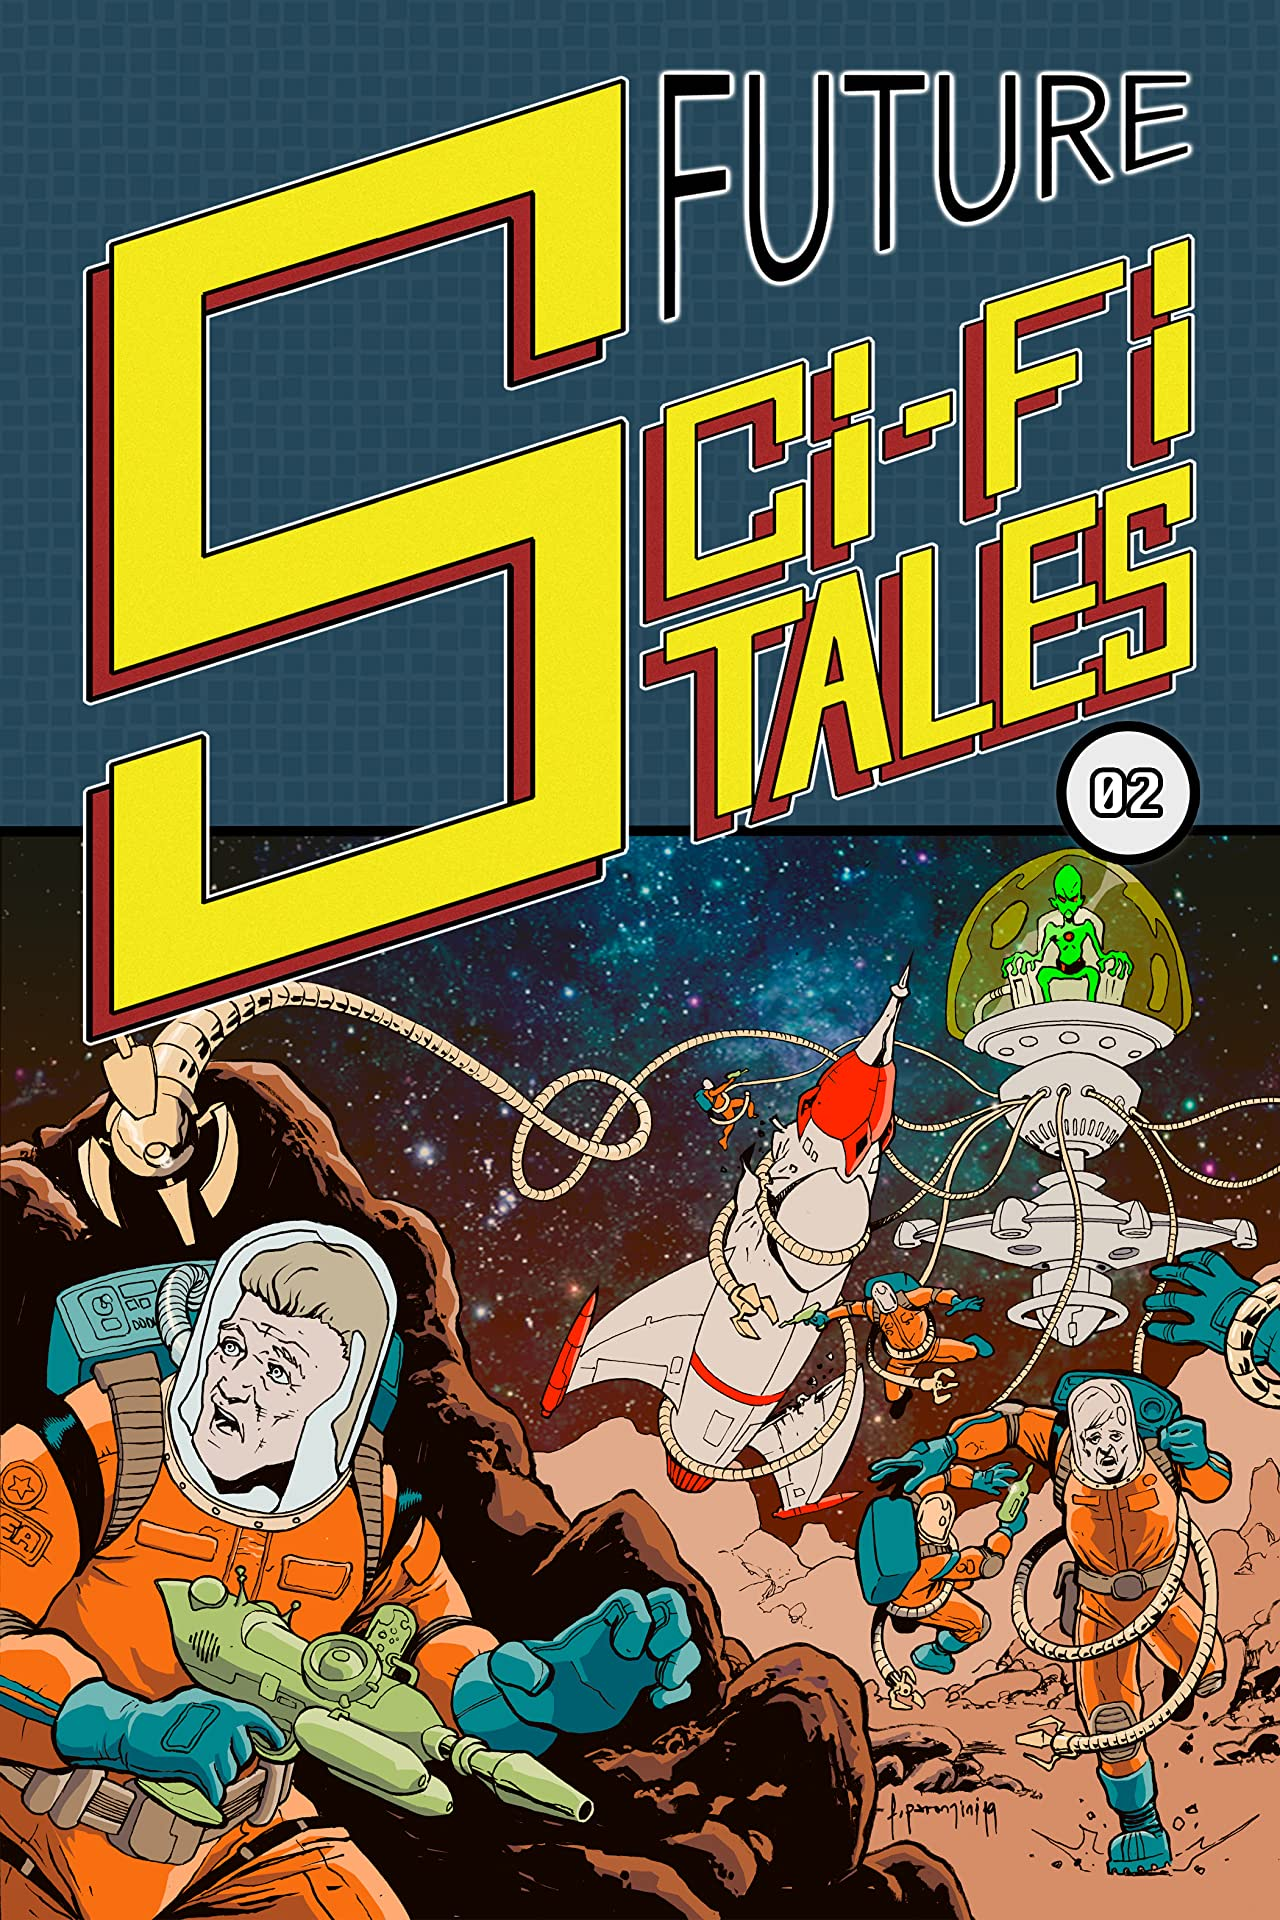 Future Sci-Fi Tales Vol. 02